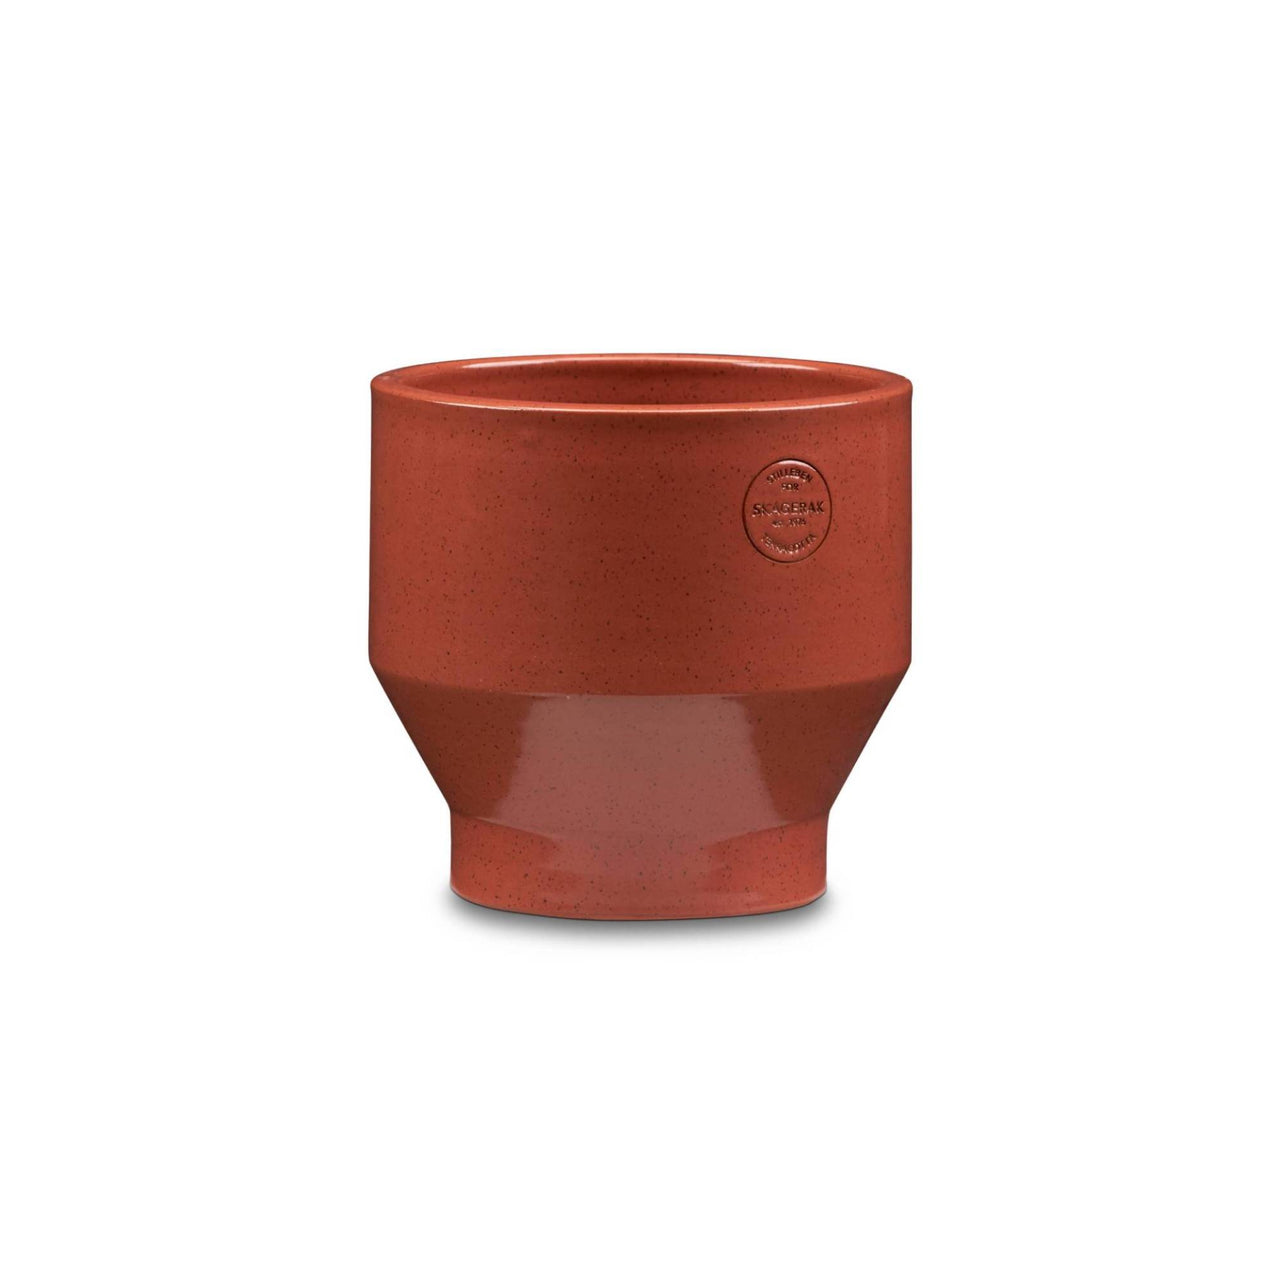 Edge Pot: Medium - 7